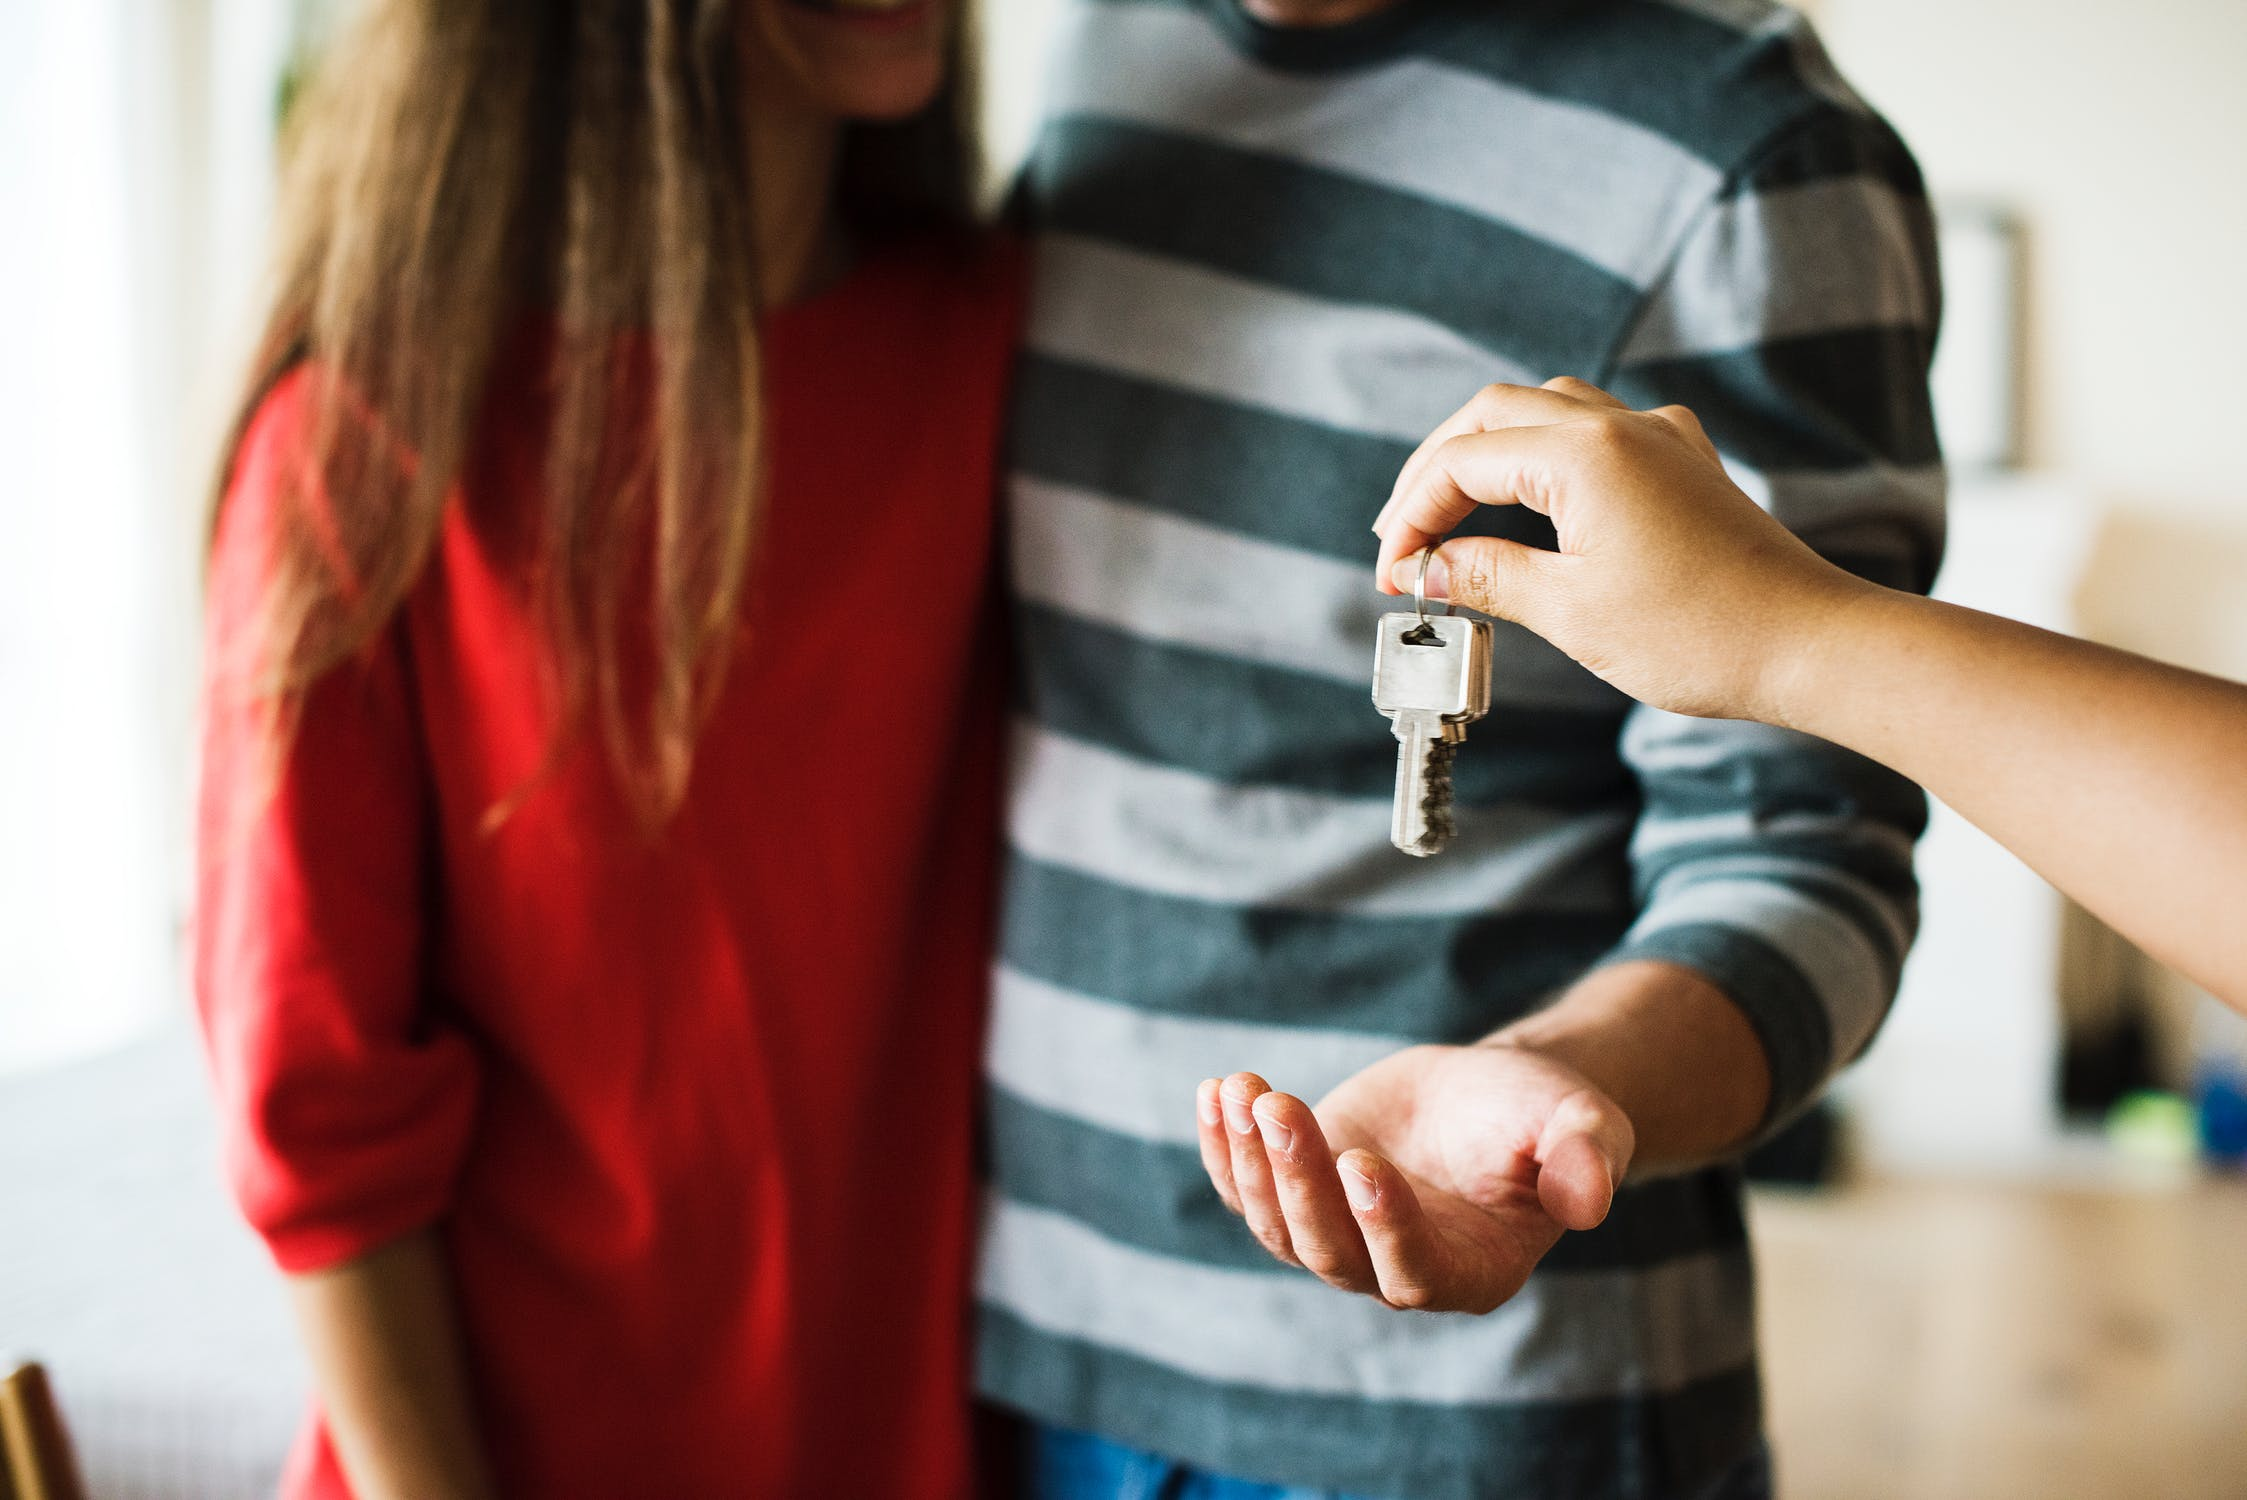 Handing over keys while closing a deal on a home